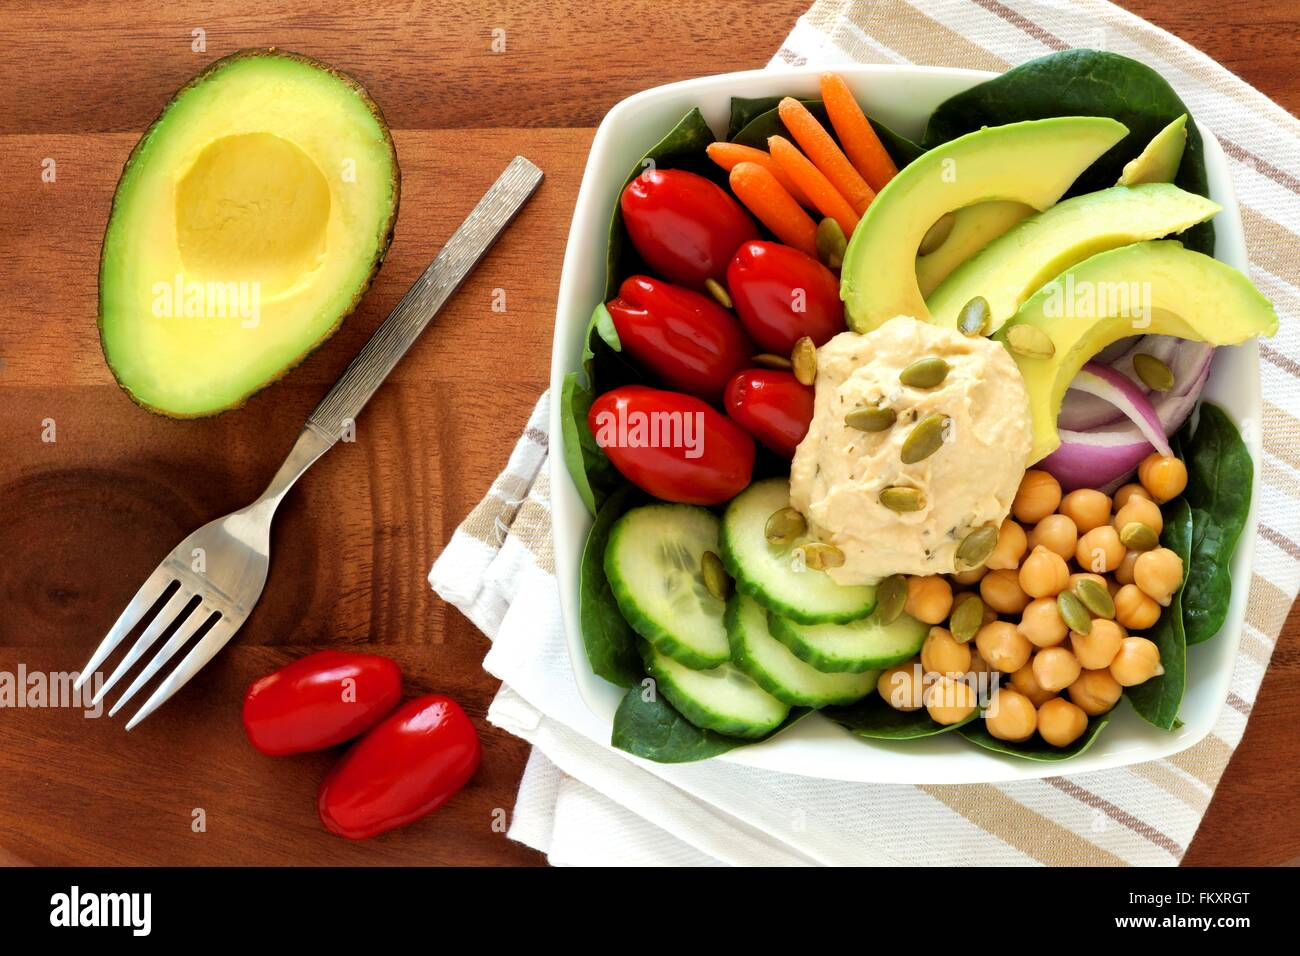 Healthy lunch bowl with avocado, hummus and fresh vegetables, overhead scene on wooden table - Stock Image